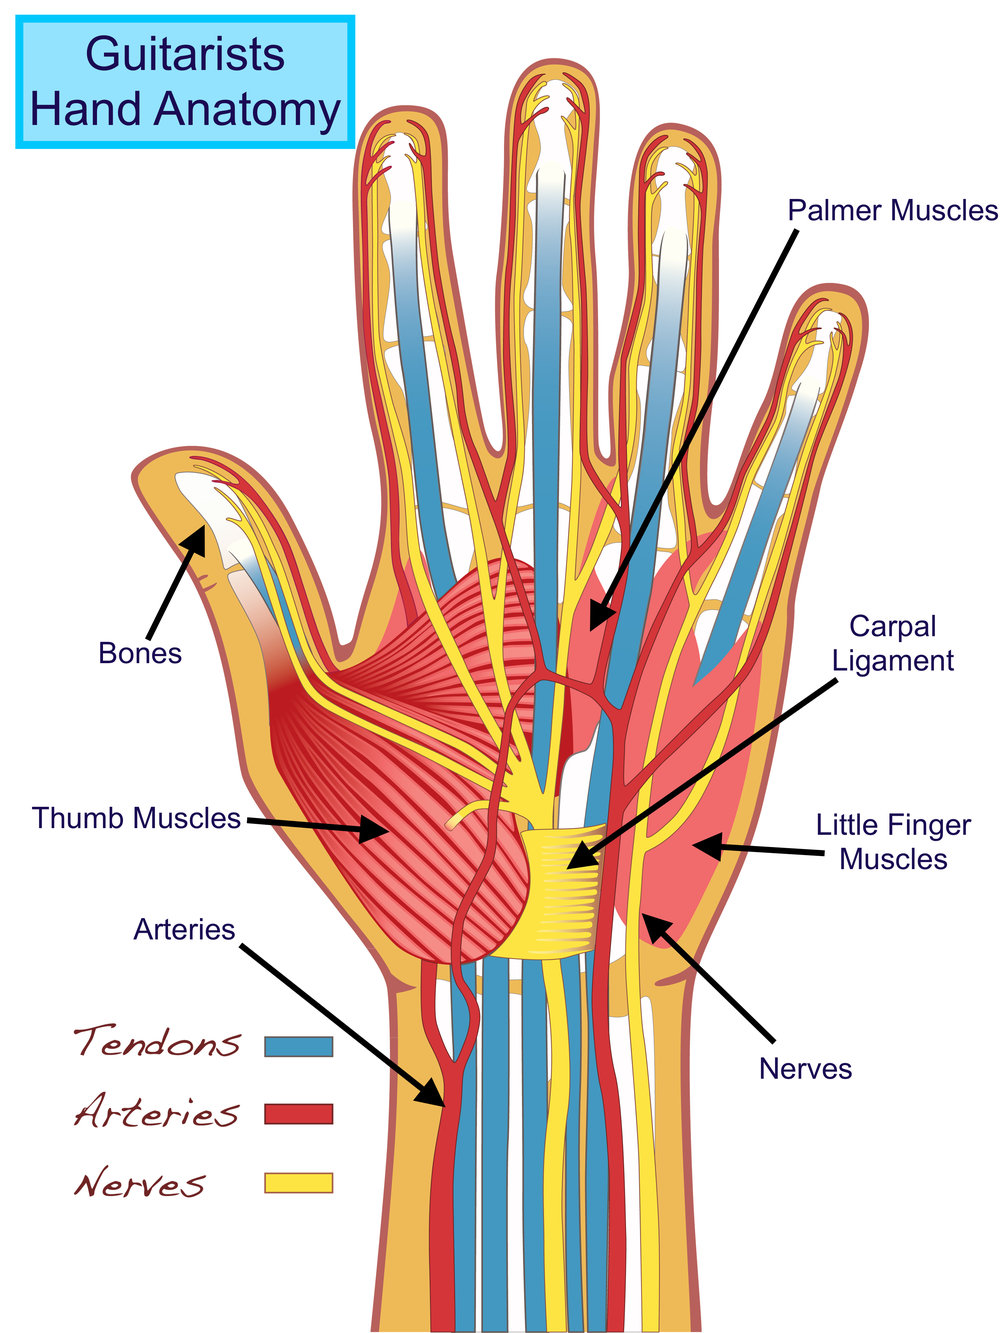 Hand Anatomy  U2014 Tuned In Guitar Lessons